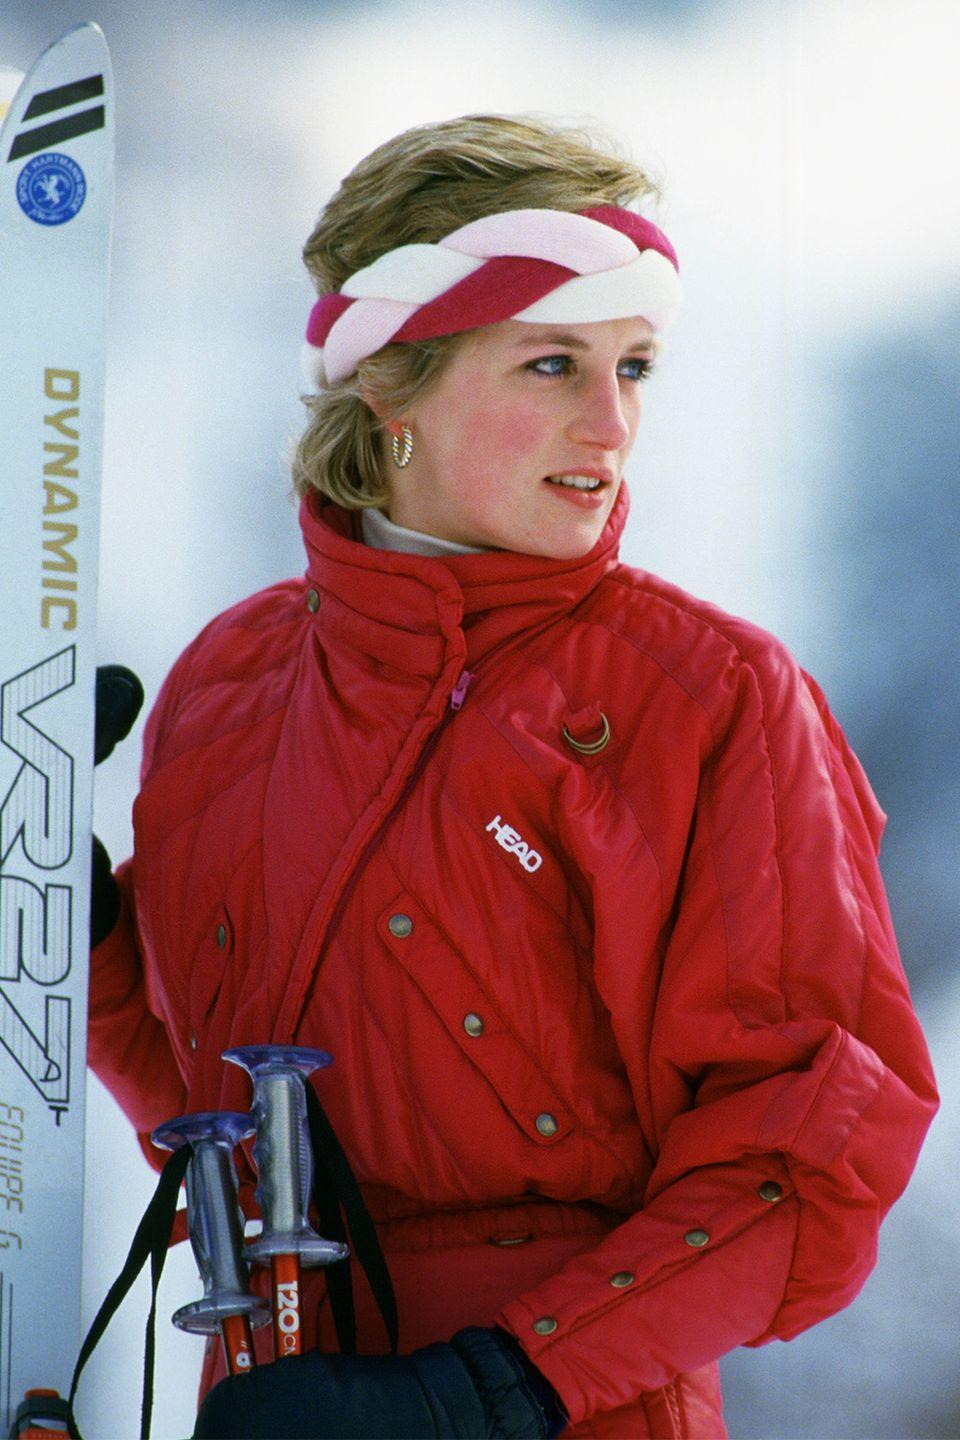 <p>For a ski trip in Switzerland, Diana kept her hair pushed back with the help of a red, pink, and white braided headband worn across her forehead.</p>